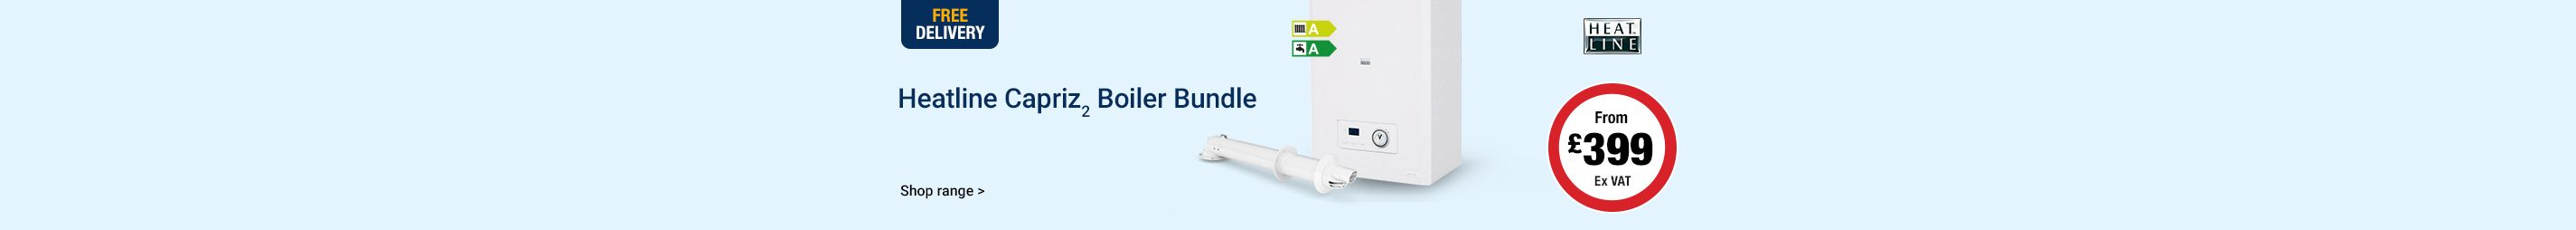 Heatline Capriz Boiler Bundle